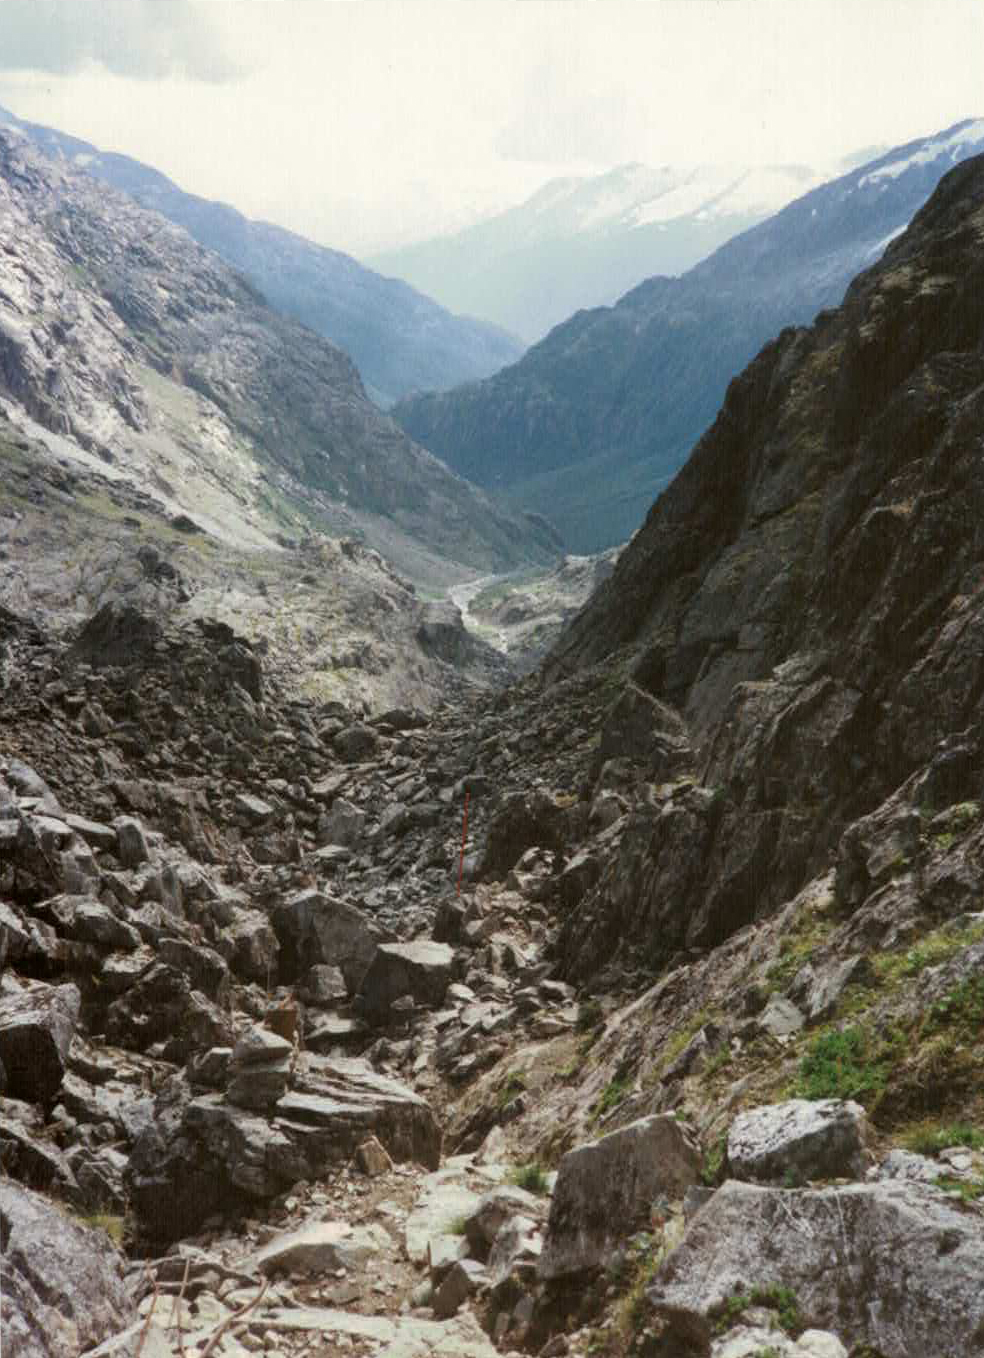 VIEW DOWN CHILKOOT PASS TRAIL